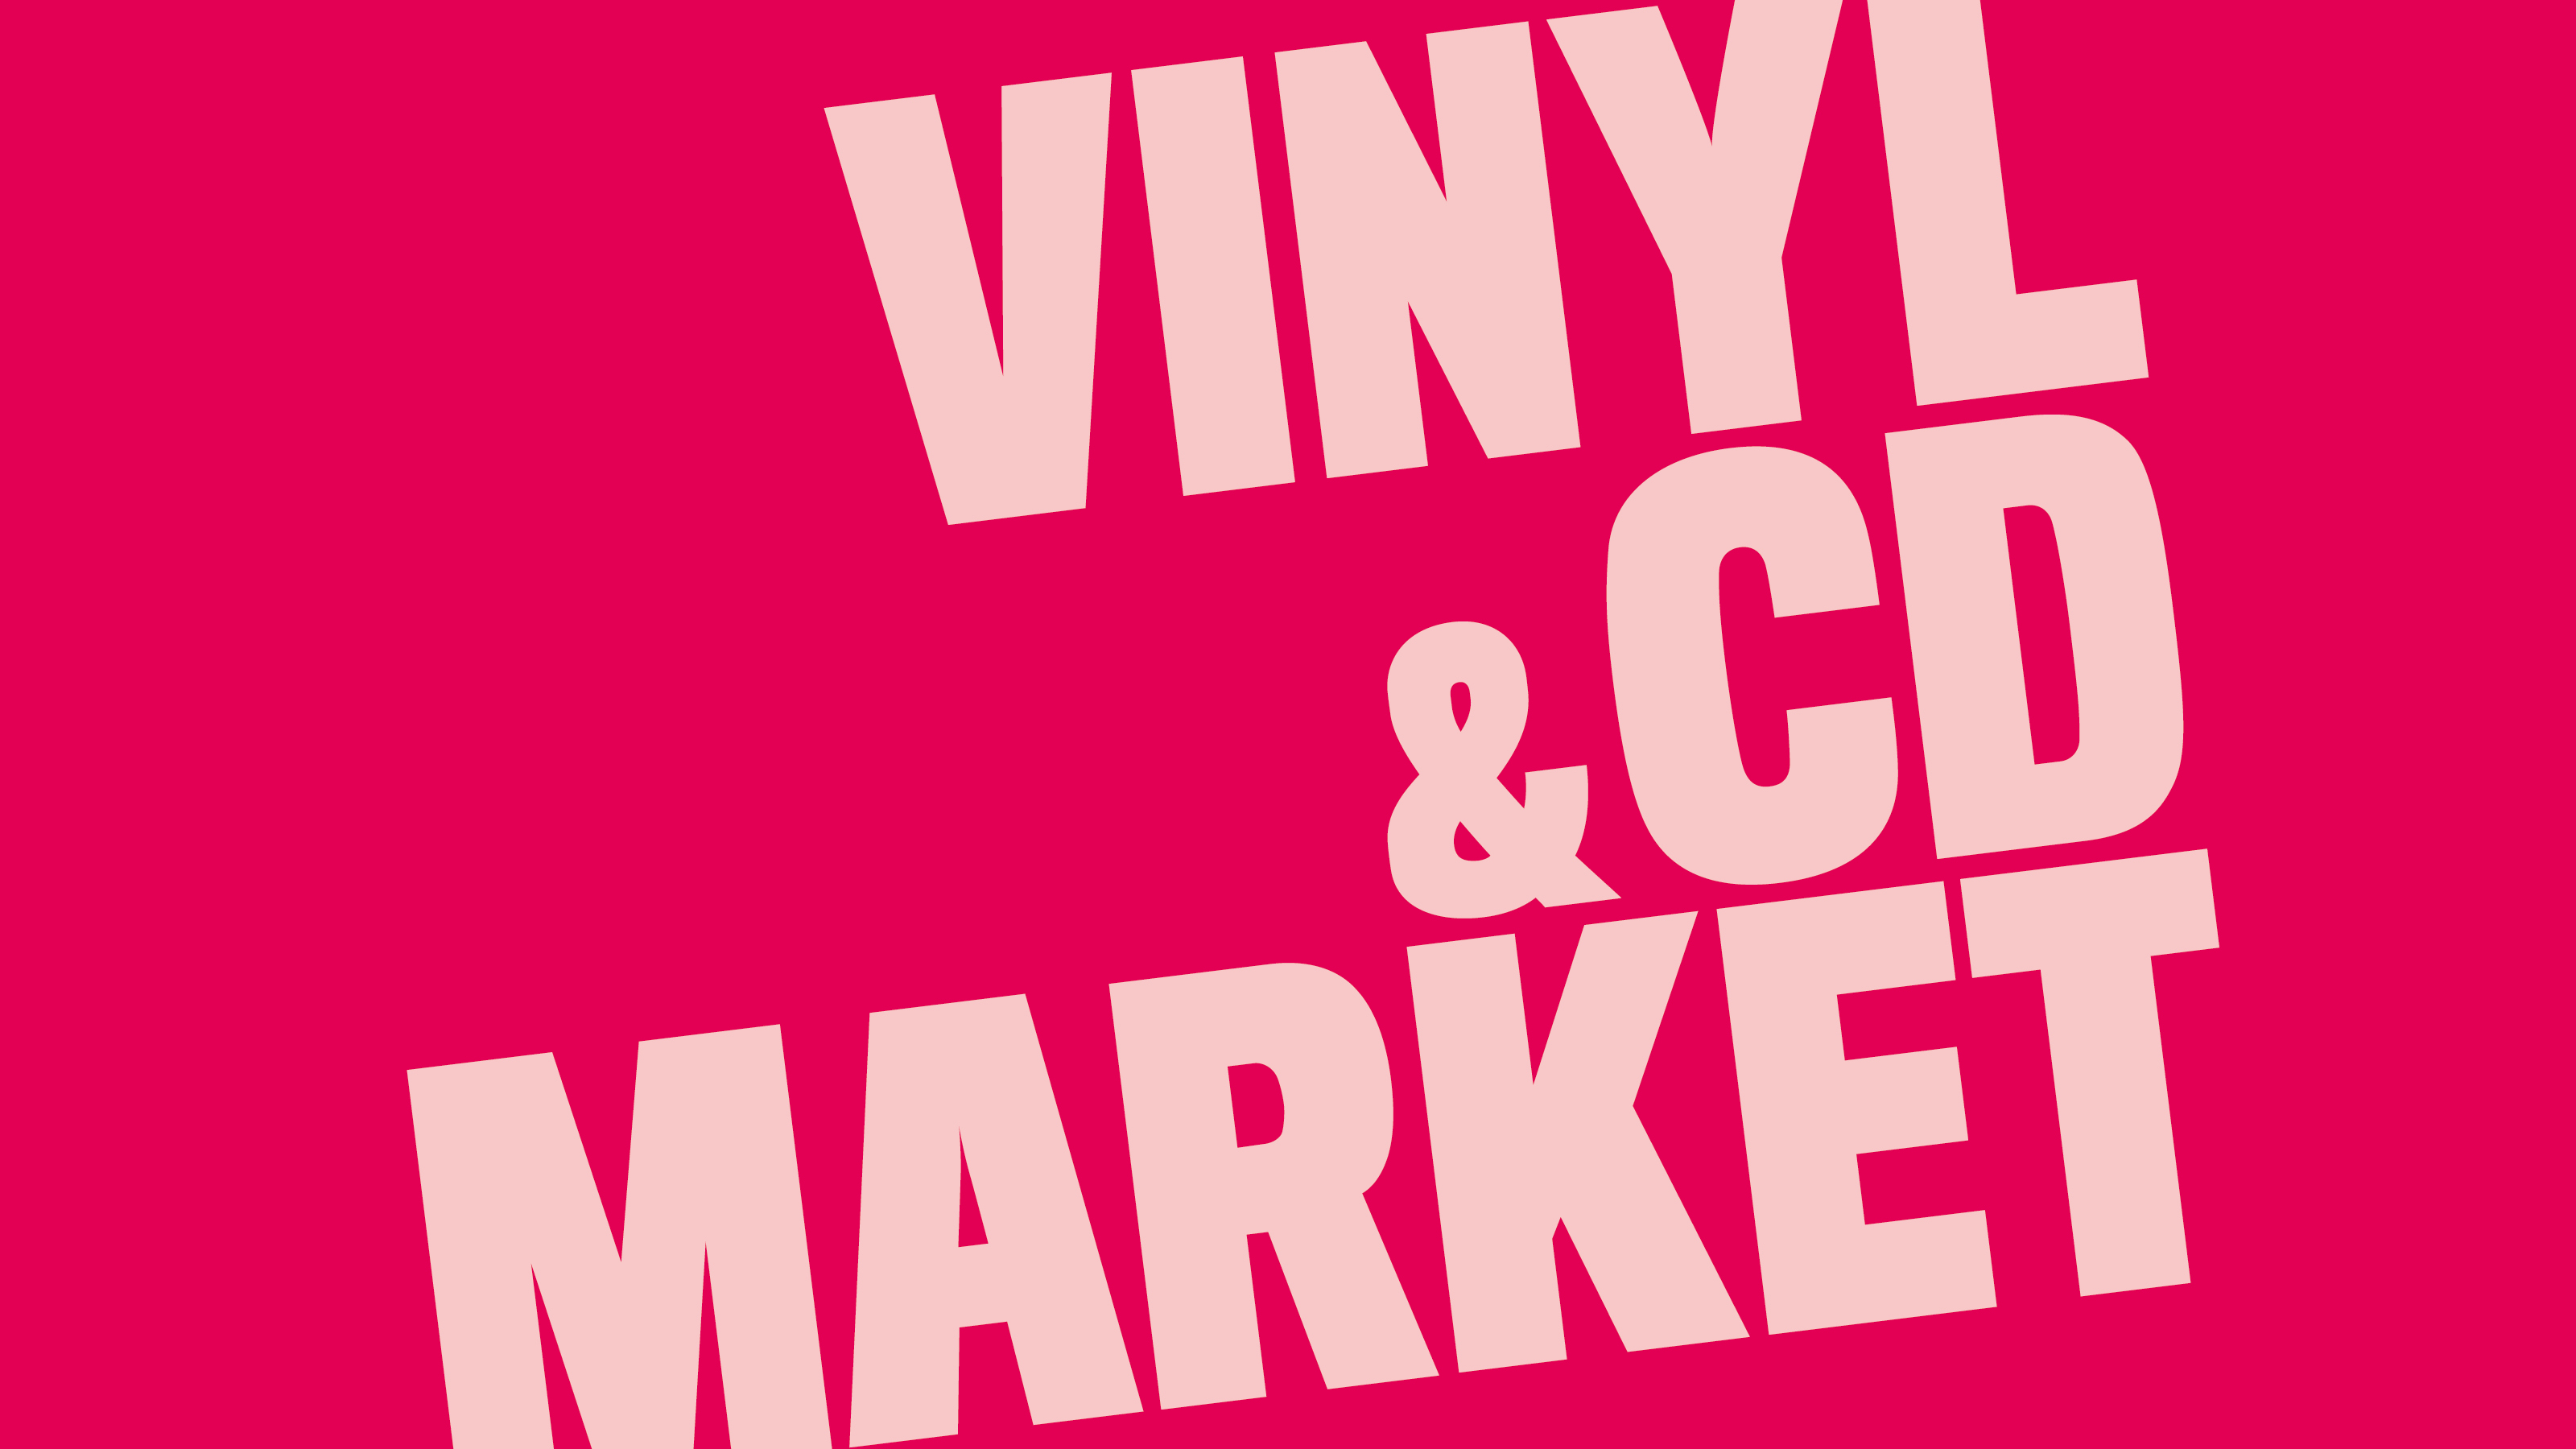 Vinyl & CD exchange